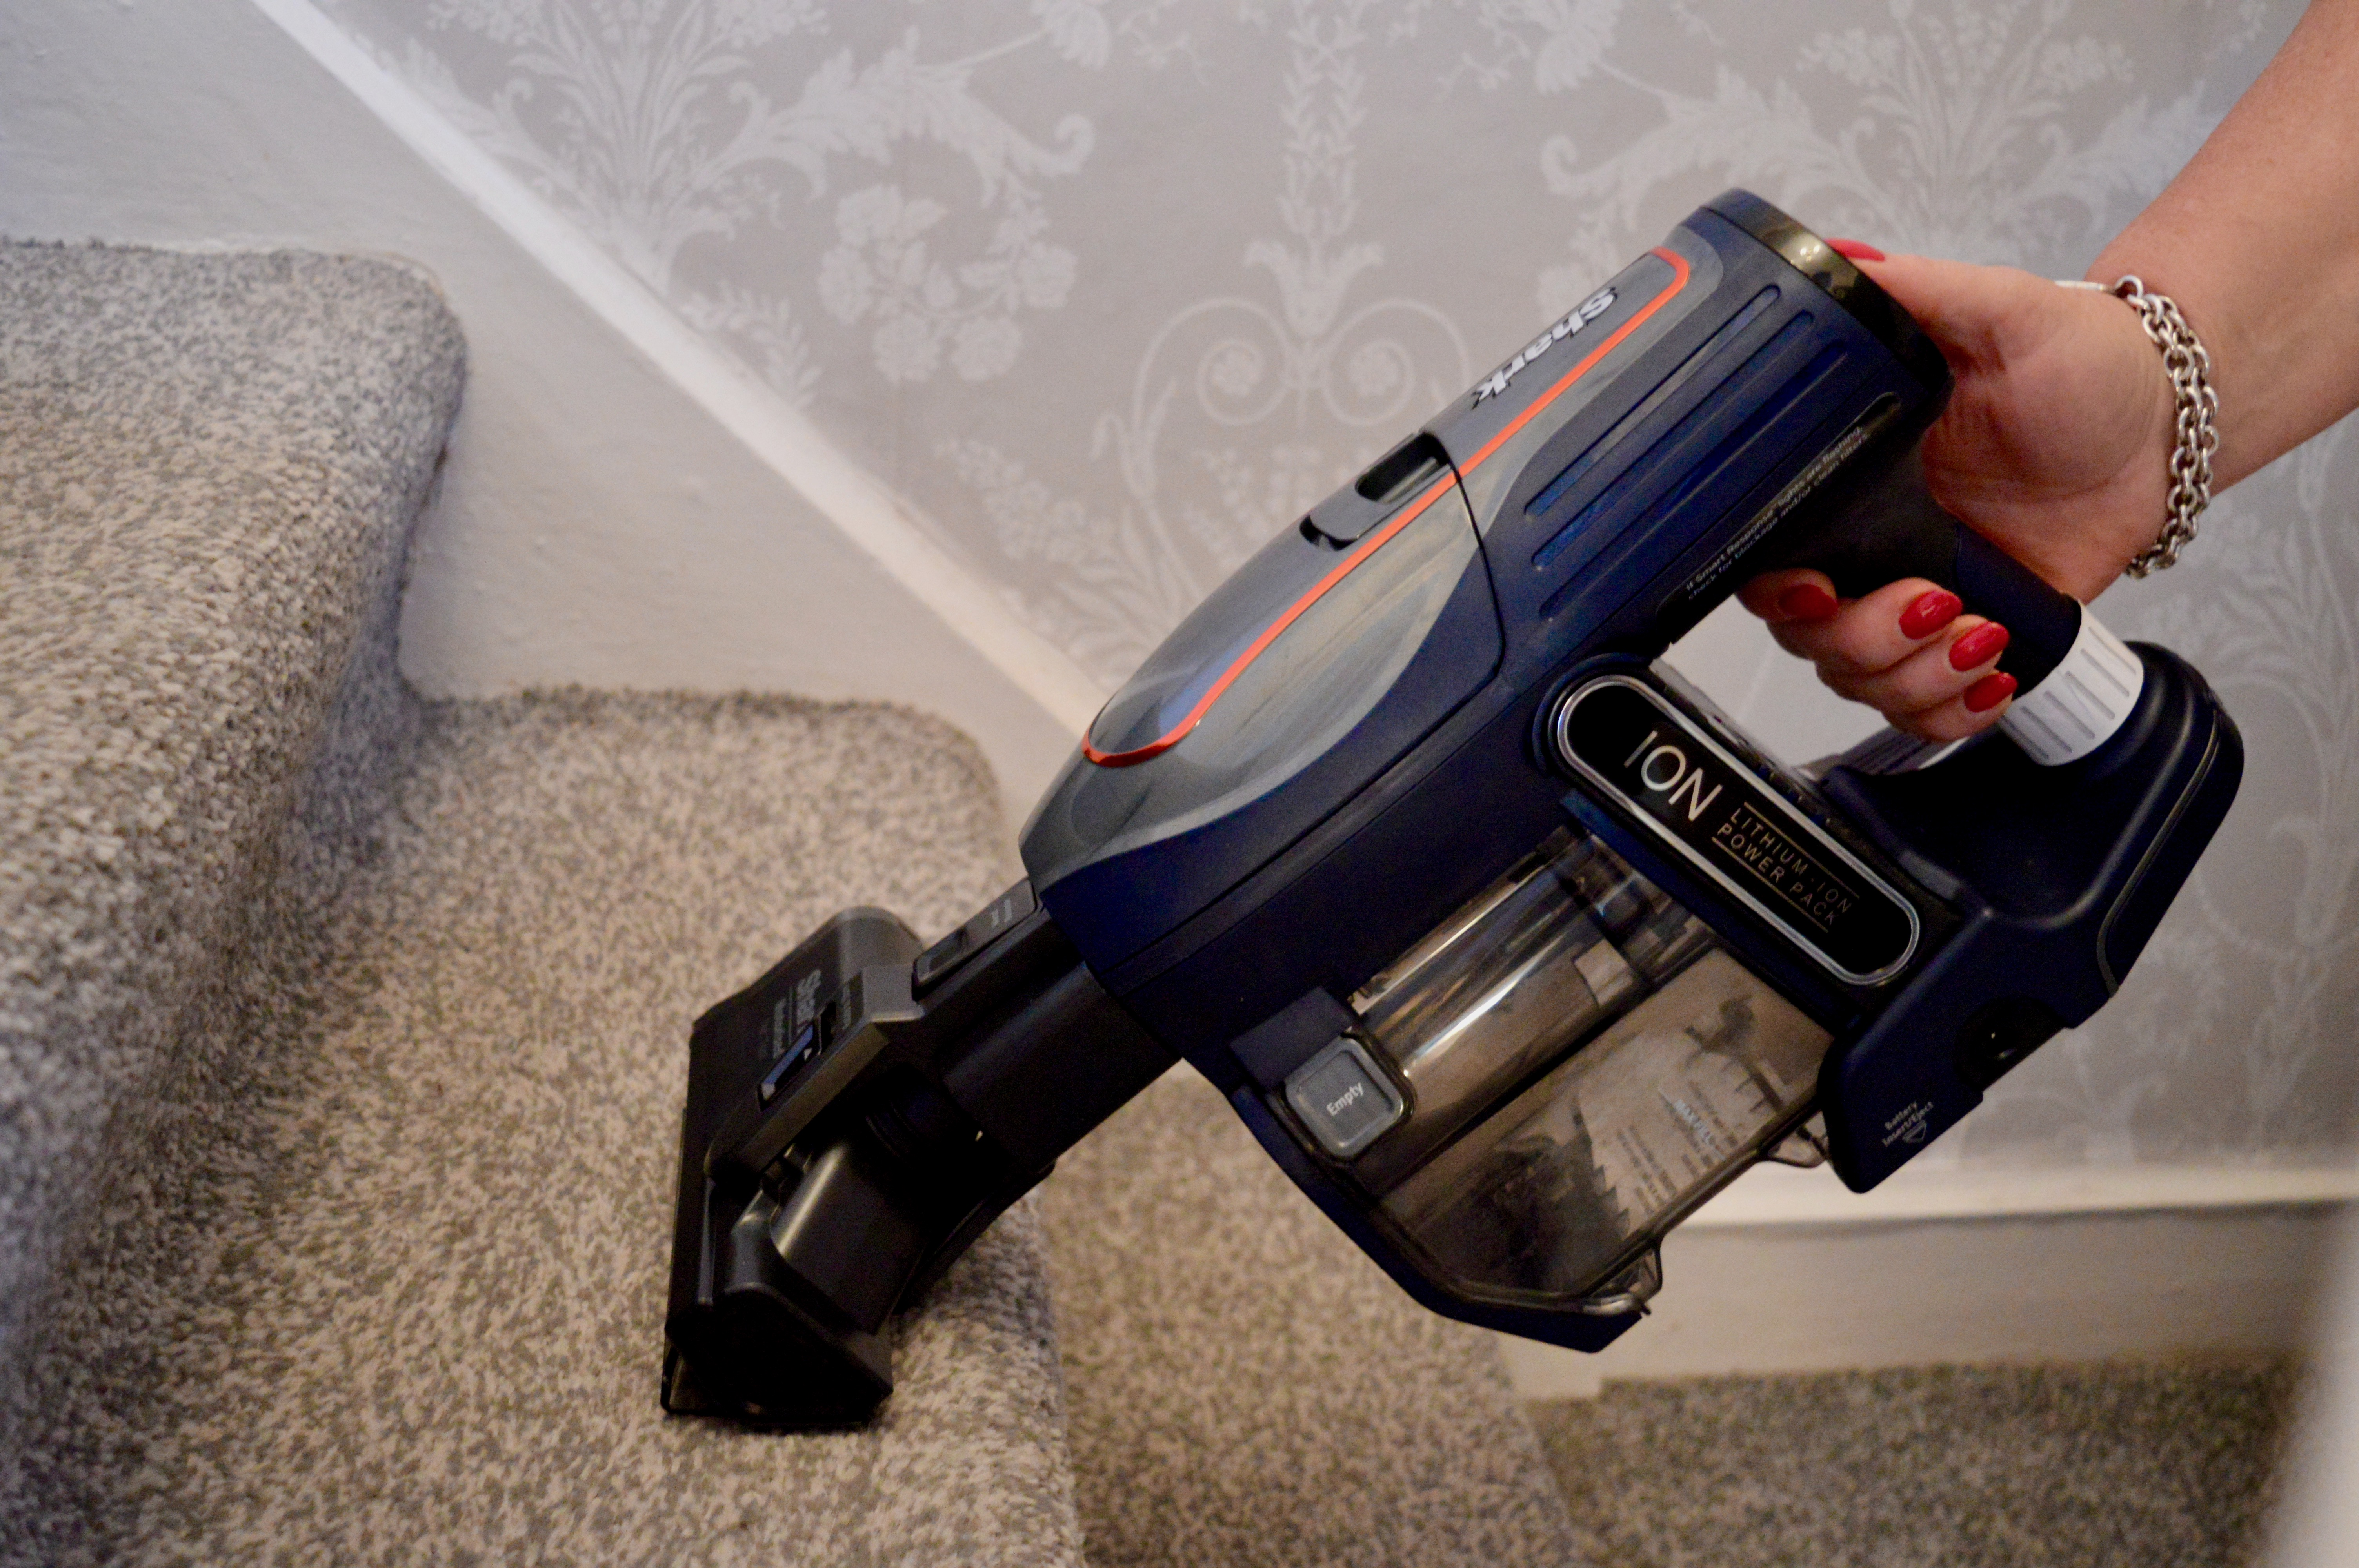 Vacuum Review: Shark DuoClean Cordless Vacuum Cleaner with TruePet Flexology Twin Battery IF250UKT | Elle Blonde Luxury Lifestyle Destination Blog